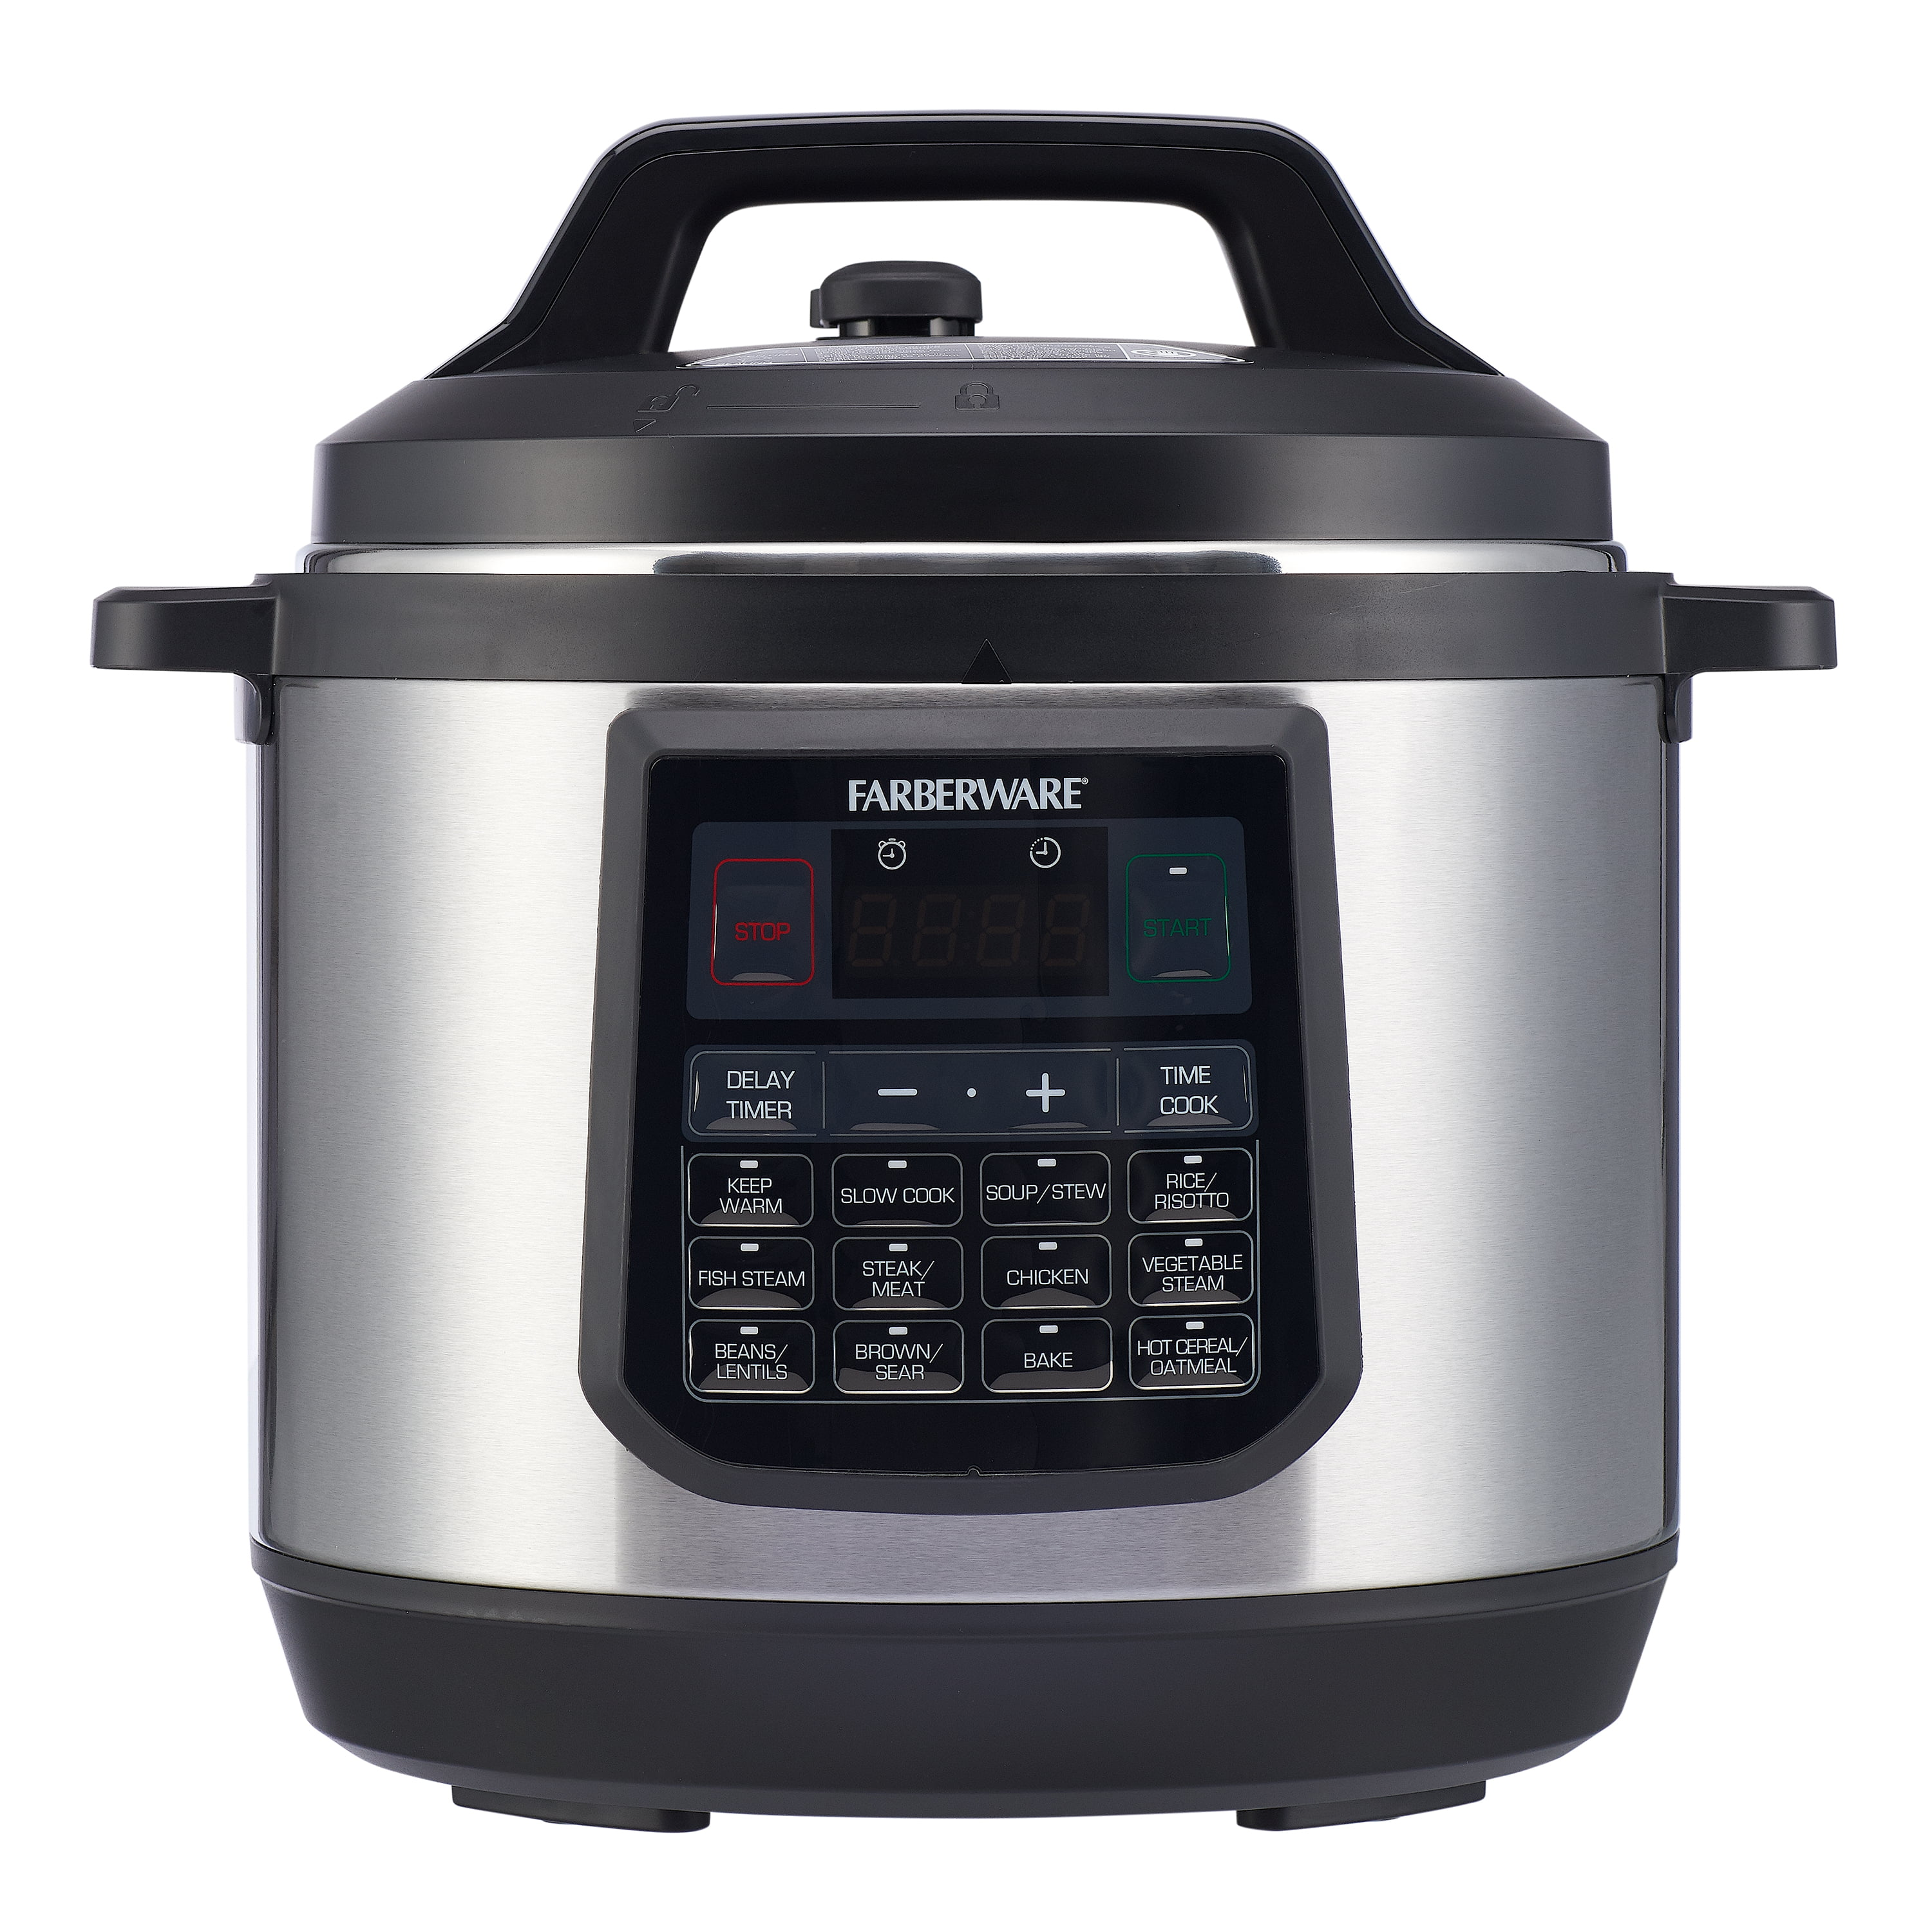 Big W Pressure Cooker Farberware 8 Quart 7 In 1 Programmable Pressure Cooker Walmart